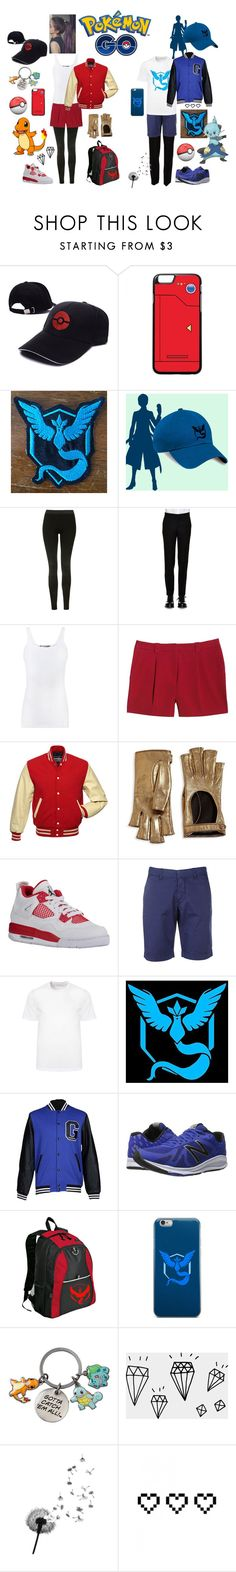 """""""Pokémon GO"""" by bambam7a1 ❤ liked on Polyvore featuring Valor, Topshop, Alexander McQueen, Vince, Canvas by Lands' End, Gucci, FAY, Versace, GaÃ«lle Bonheur and New Balance"""